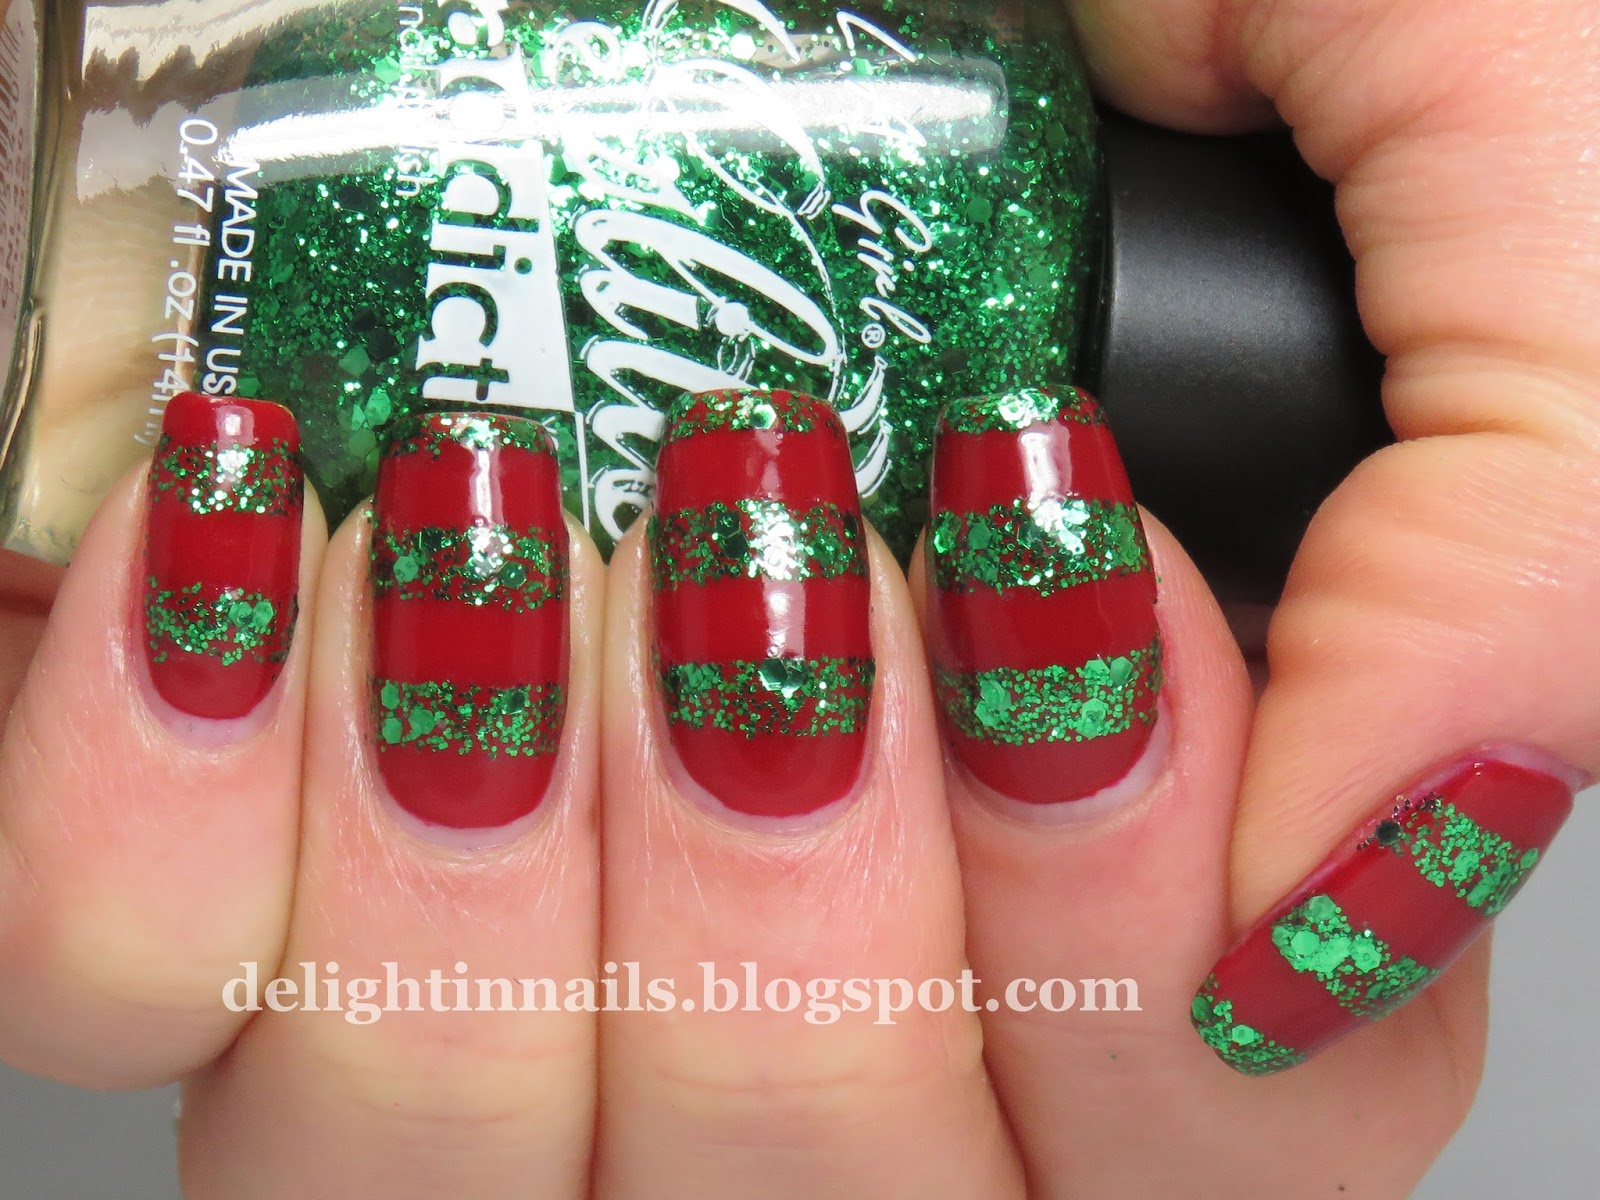 Delight In Nails 40 Great Nail Art Ideas Glitter Topper Or Flakie